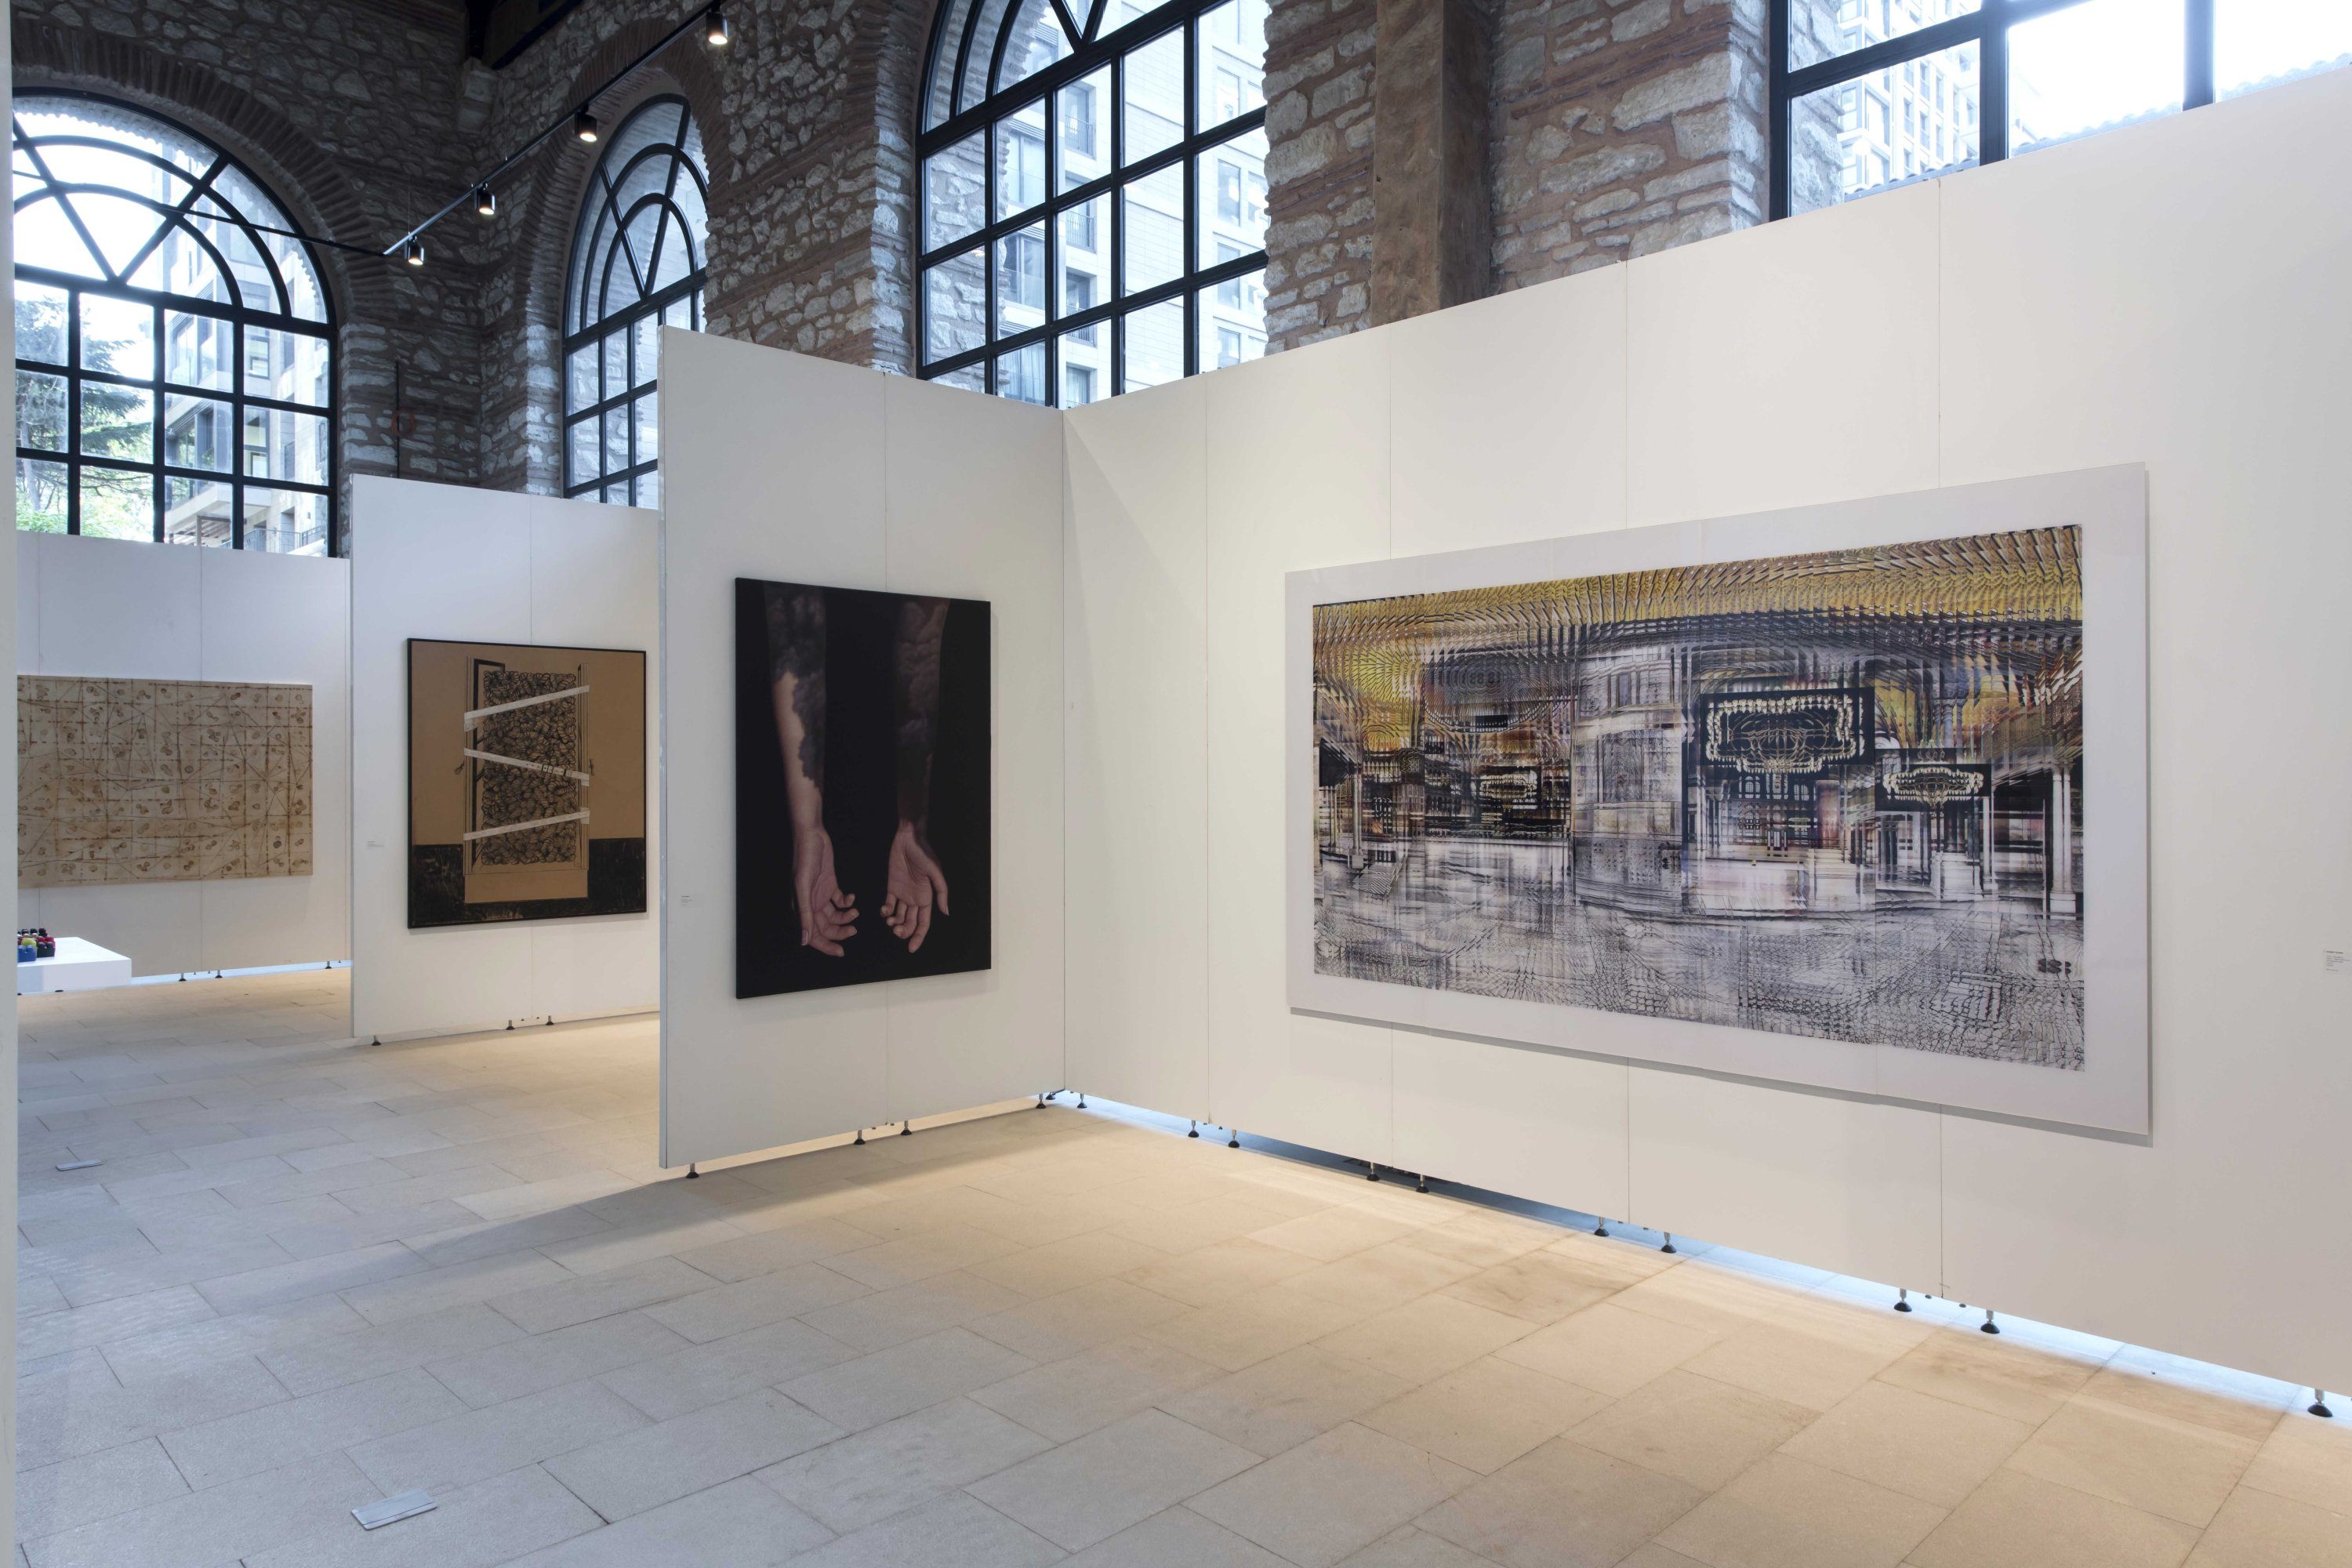 'Spinning the Cocoon,' installation view of work by Ahmet Elhan. (Photo by Kayhan Kaygusuz)